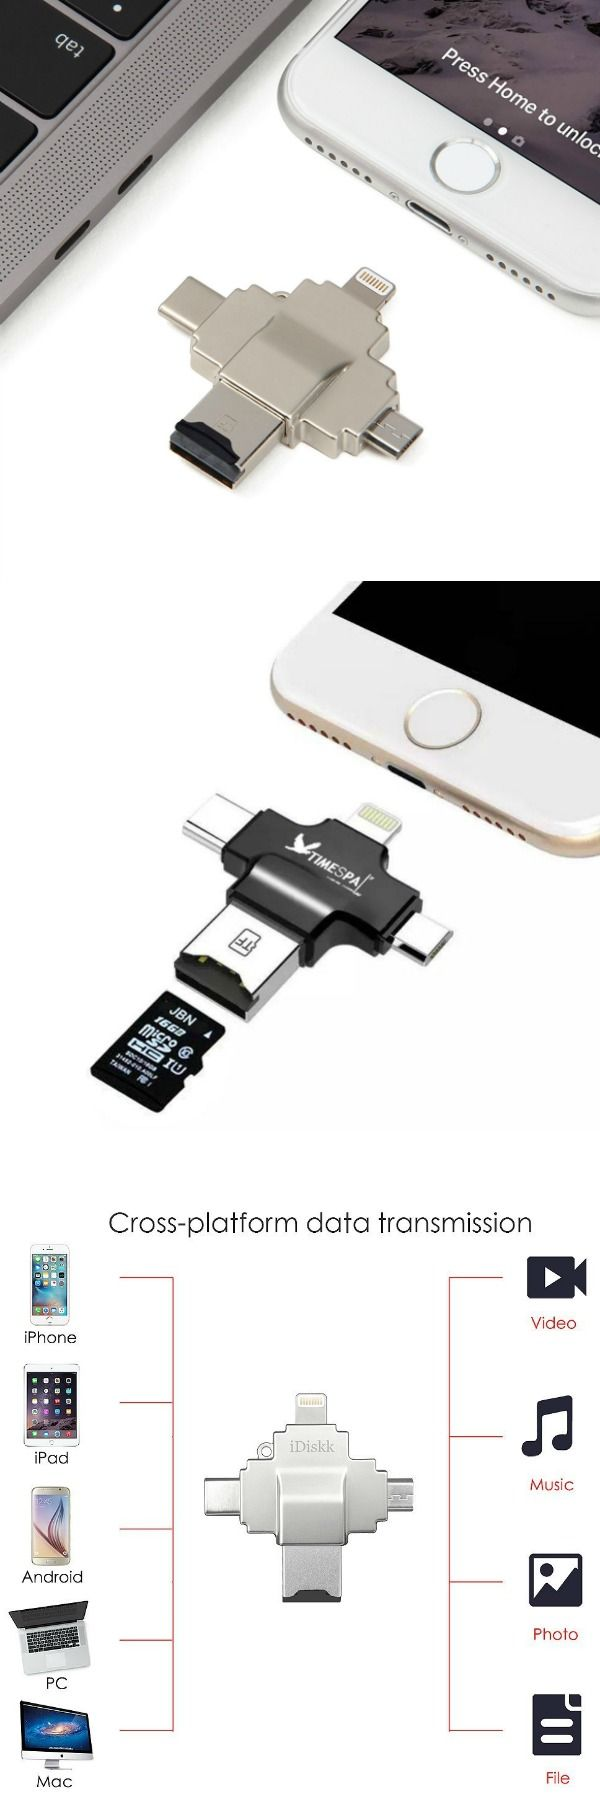 4-in-1 design allows you to access all devices: Easily transfer files, photos, and videos between iPhone, iPad, iPod, Android Phones, PCs and Mac Computers with USB-A and USB-C Connector. #affiliate